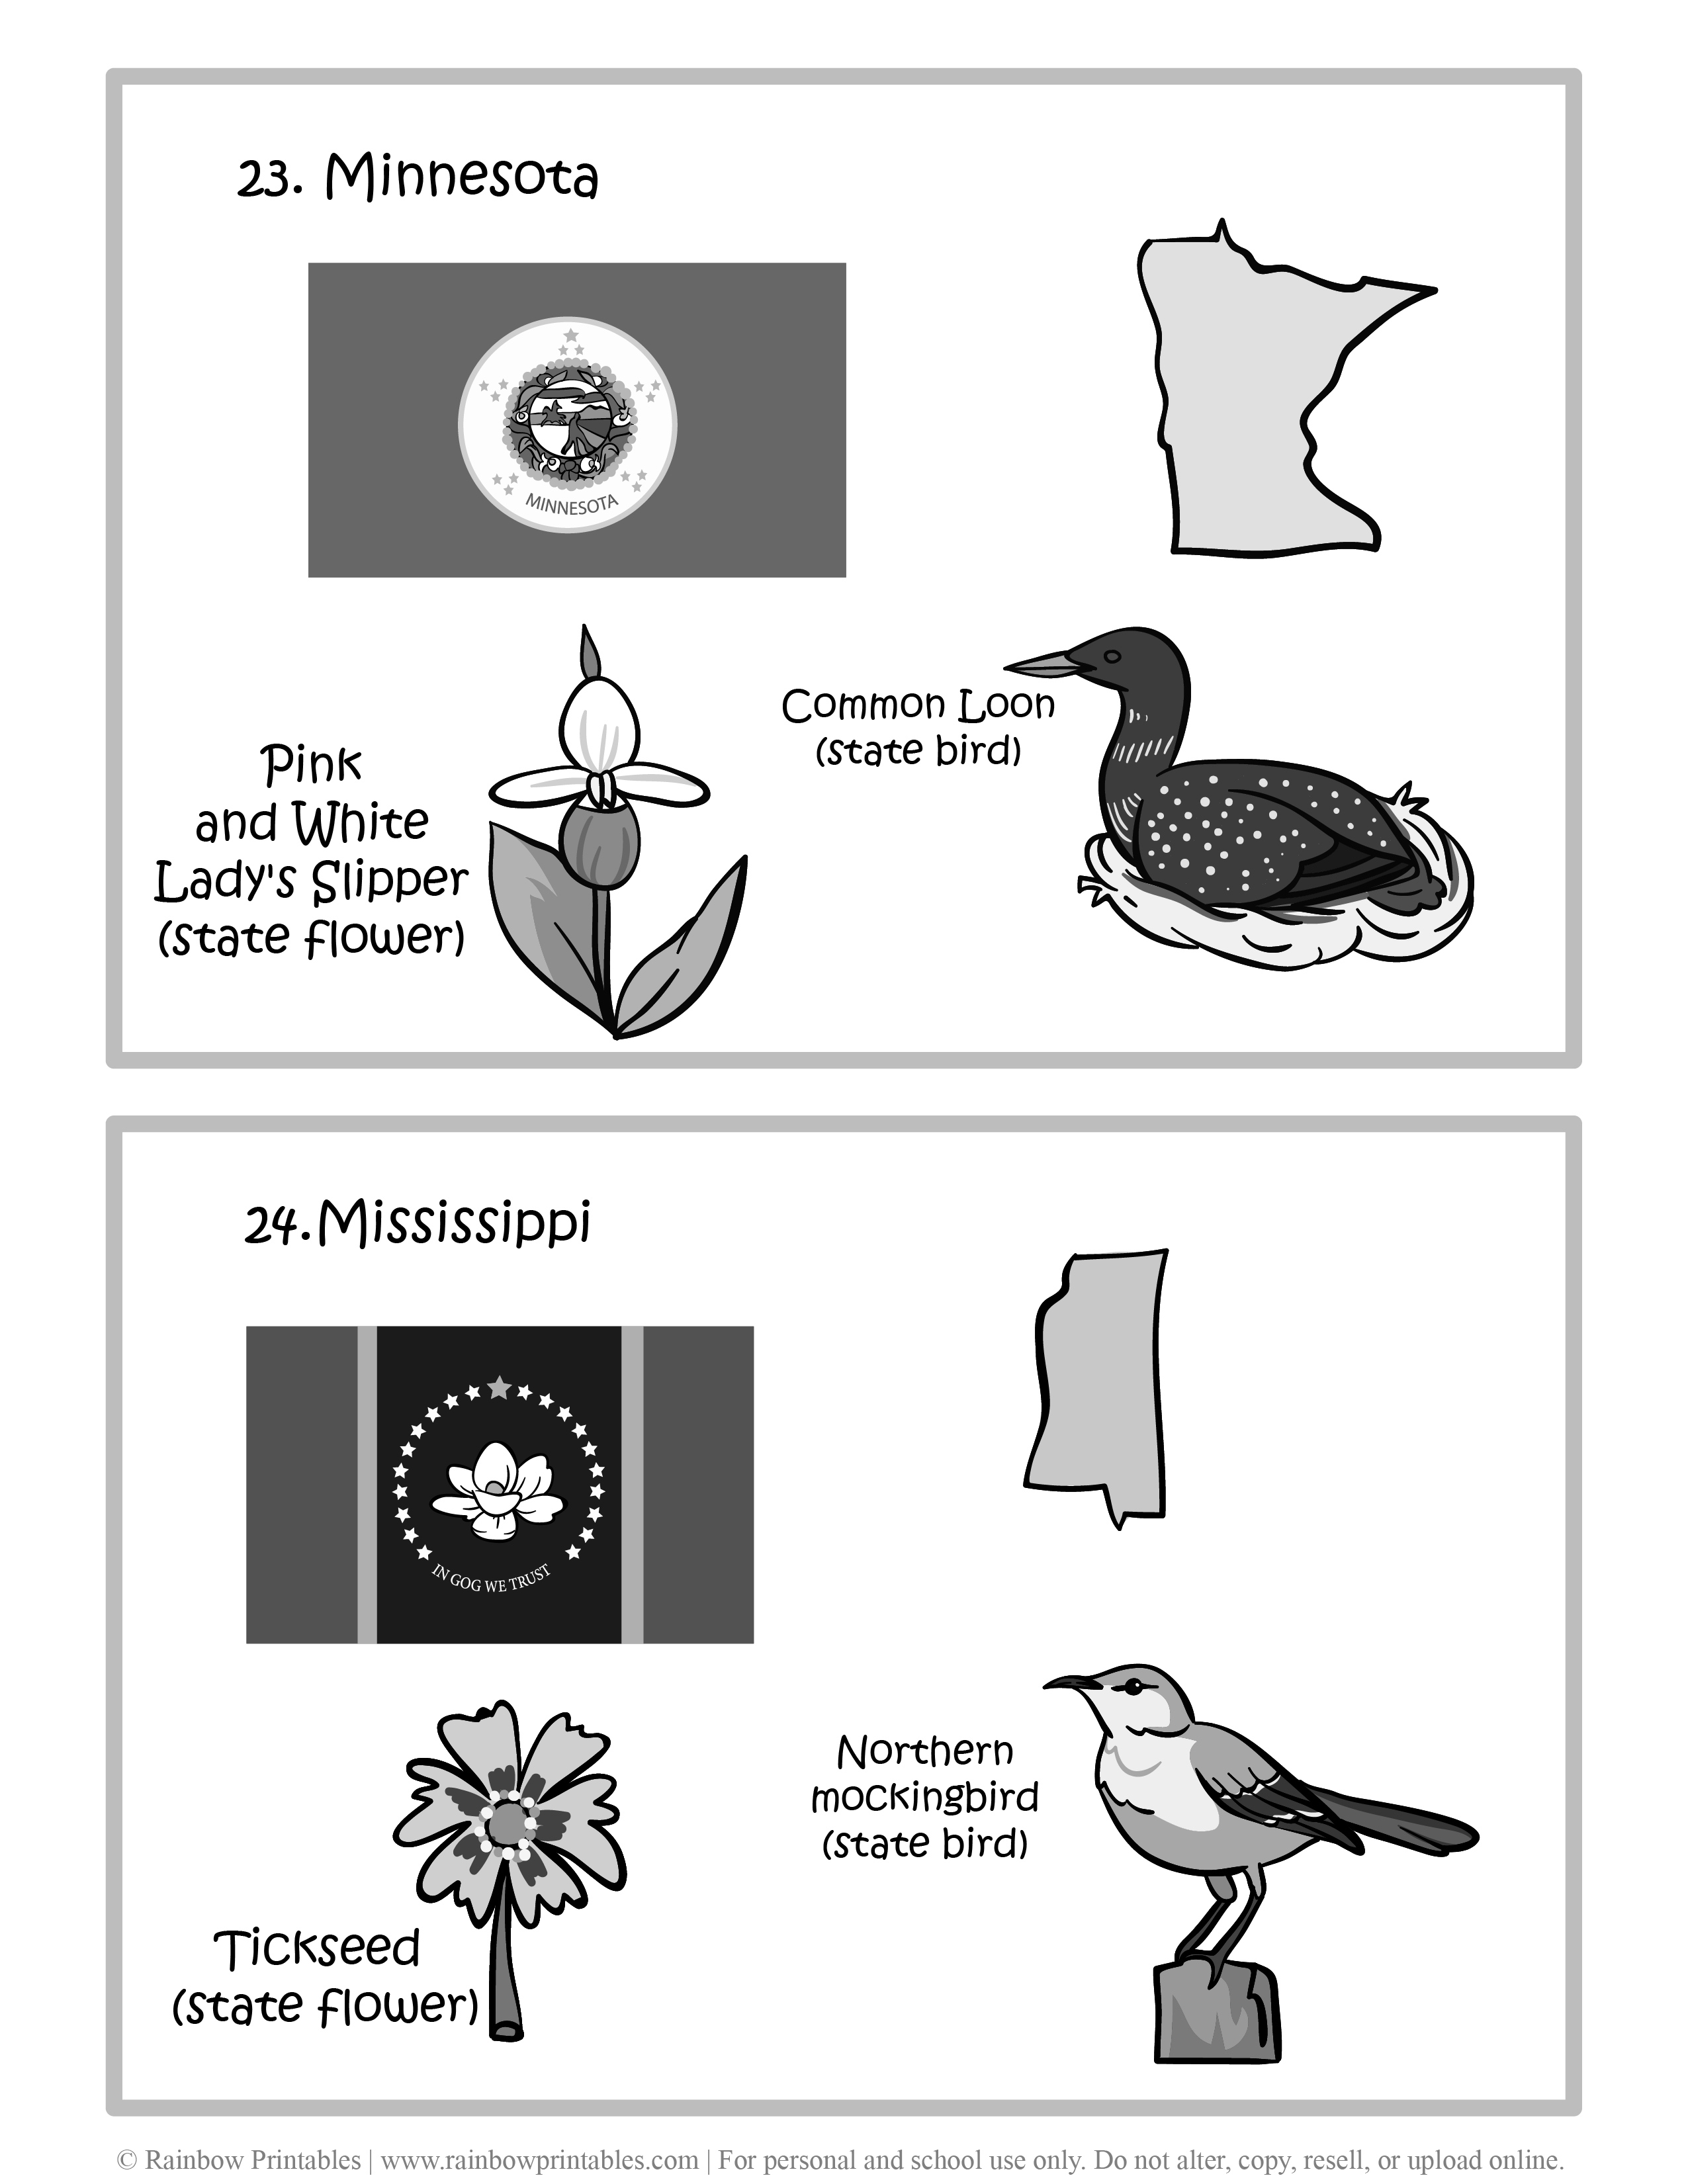 Minnesota, Mississippi, 50 US State Flag, State Bird, State Flower, United States of America - American States Geography Worksheet Class Lesson Printables Flashcards Black White